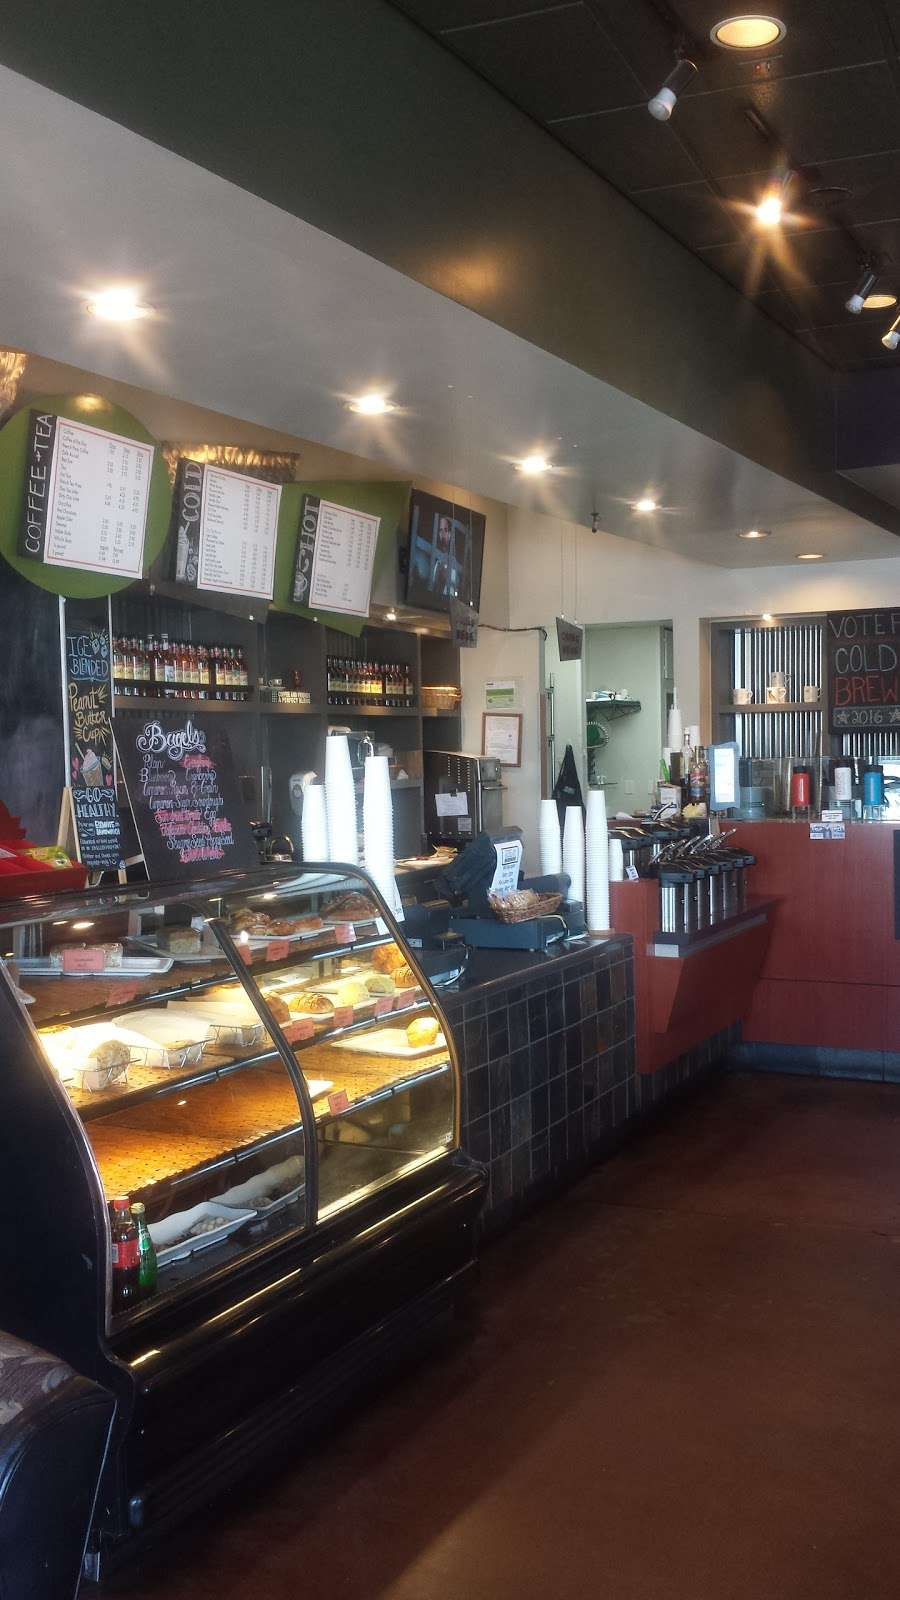 Java Connection - cafe  | Photo 6 of 10 | Address: 4105 Ball Rd, Cypress, CA 90630, USA | Phone: (714) 484-9221